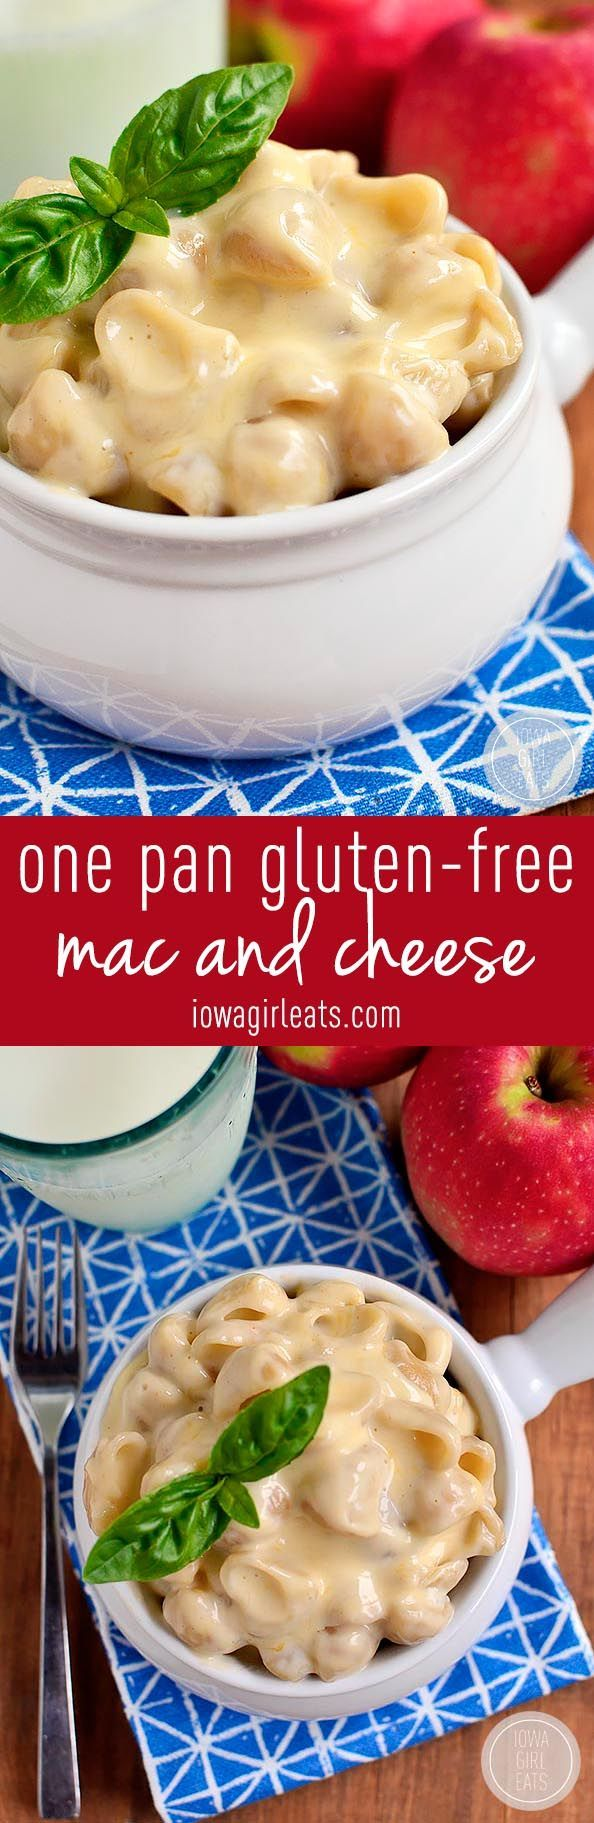 Picture the creamiest, cheesiest mac and cheese - made gluten-free and without butter or cream! One Pot Gluten-Free Mac and Cheese is it! #glutenfree | iowagirleats.com